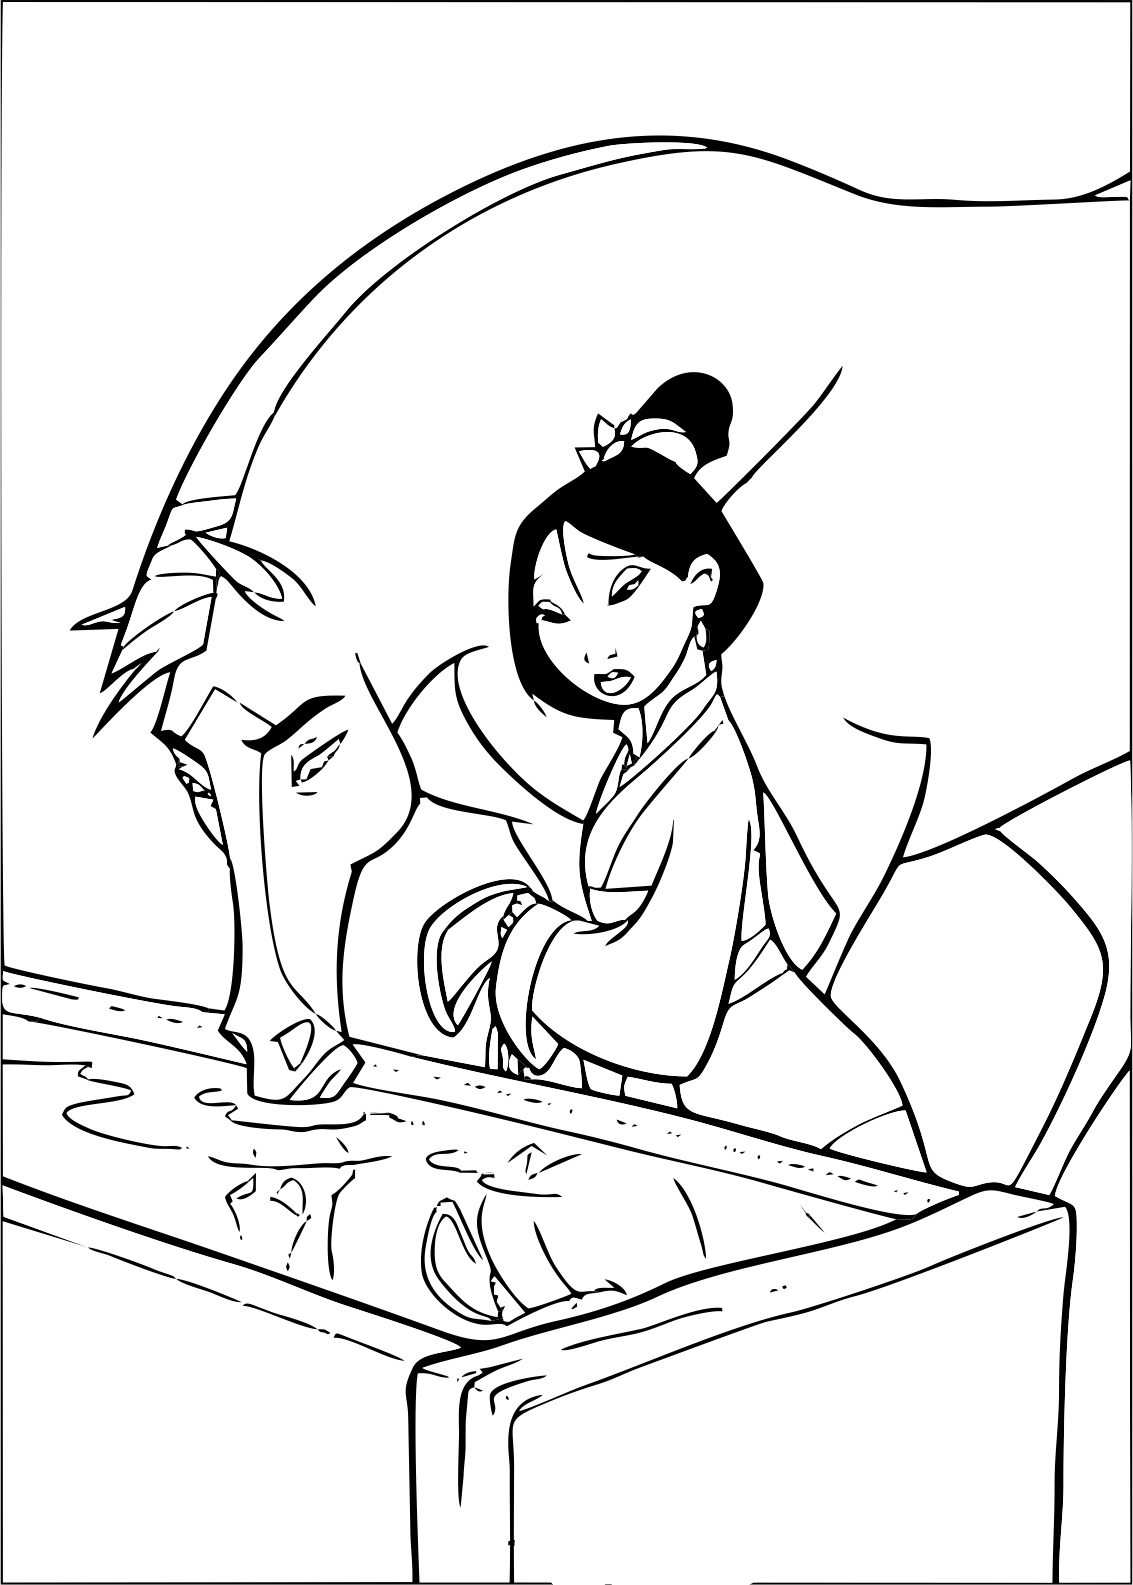 Mulan coloring page to print and color for free